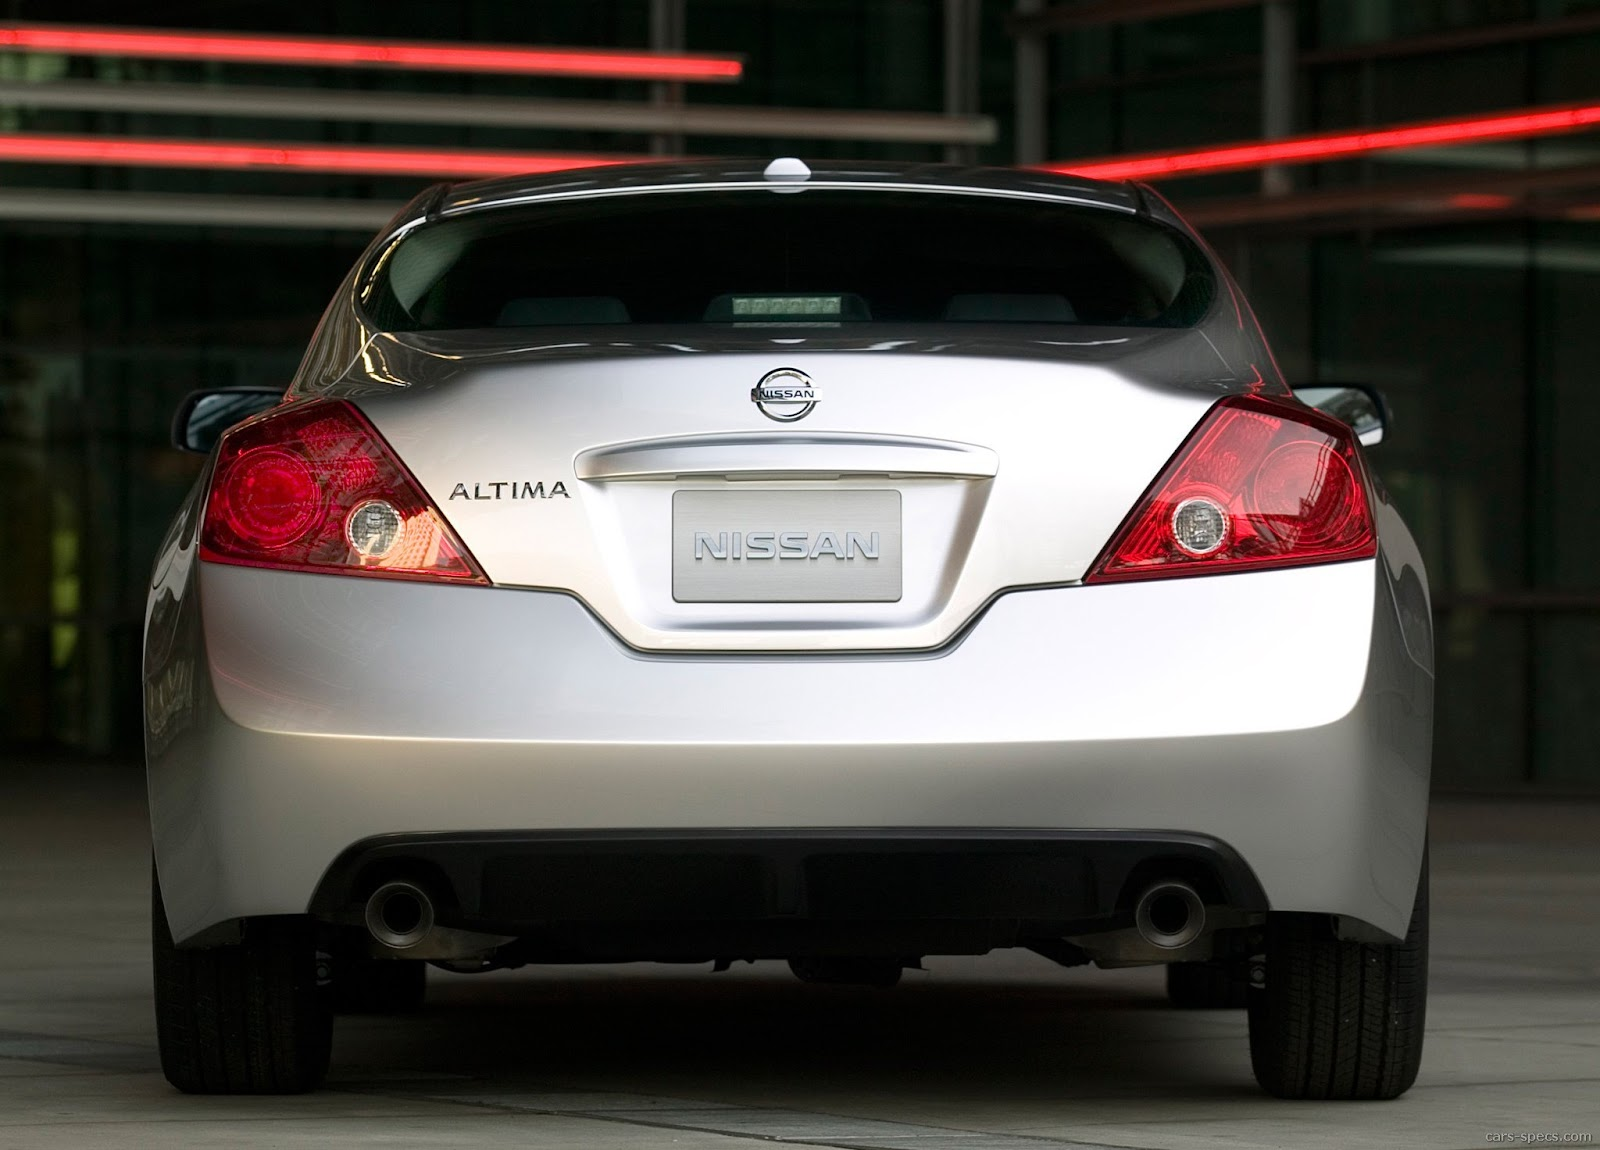 2012 Nissan Altima 2.5 S Coupe 2.5L 4 Cyl. 6 Speed Manual